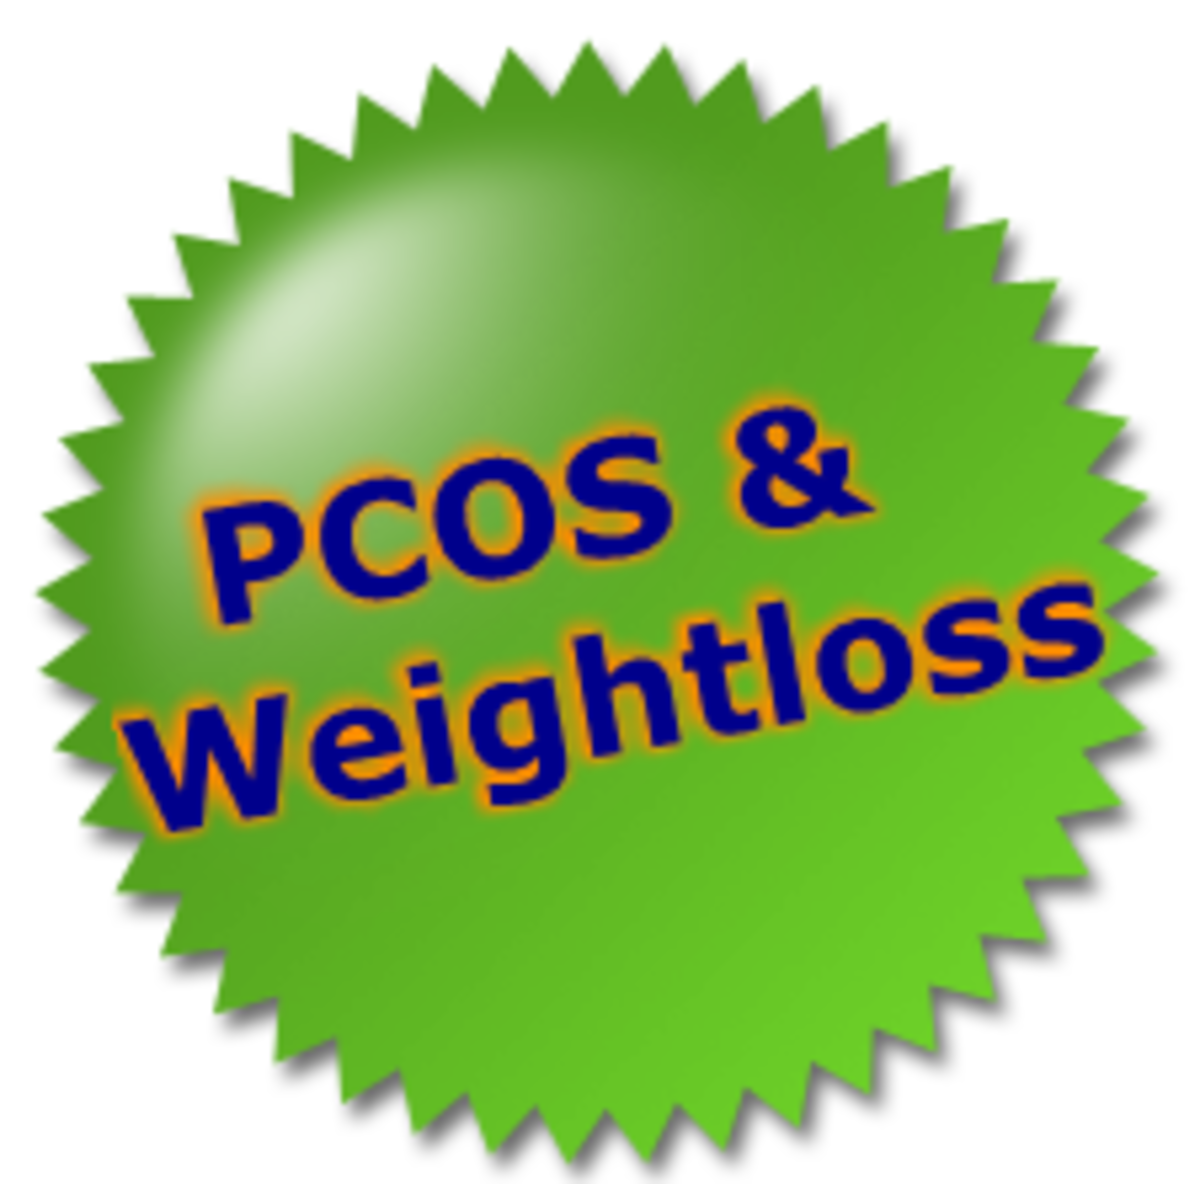 PCOS Weight Loss: An Effective Way to Loss Weight if You Have PCOS